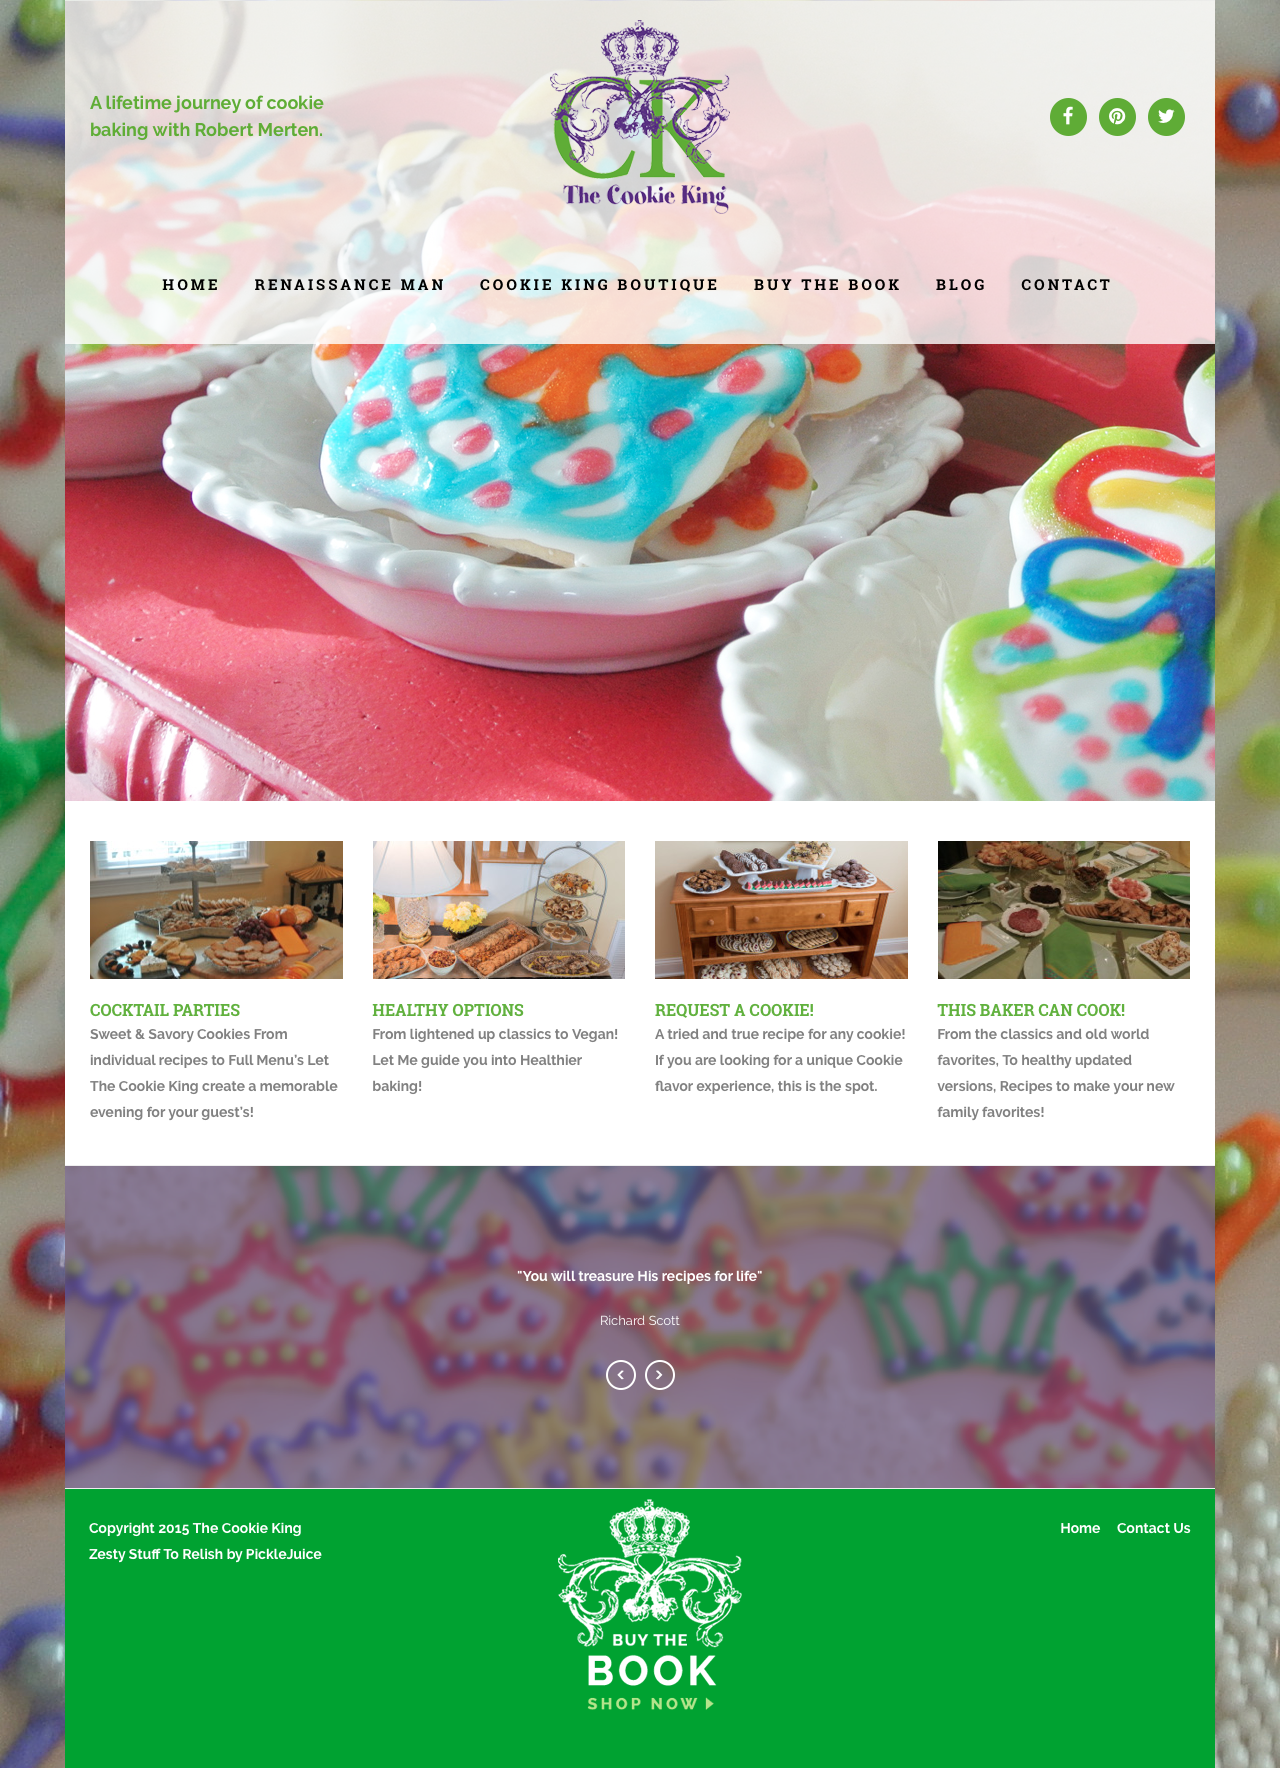 The Cookie King | A Lifetime Journey of Cookie Baking Web Design | PickleJuice Productions